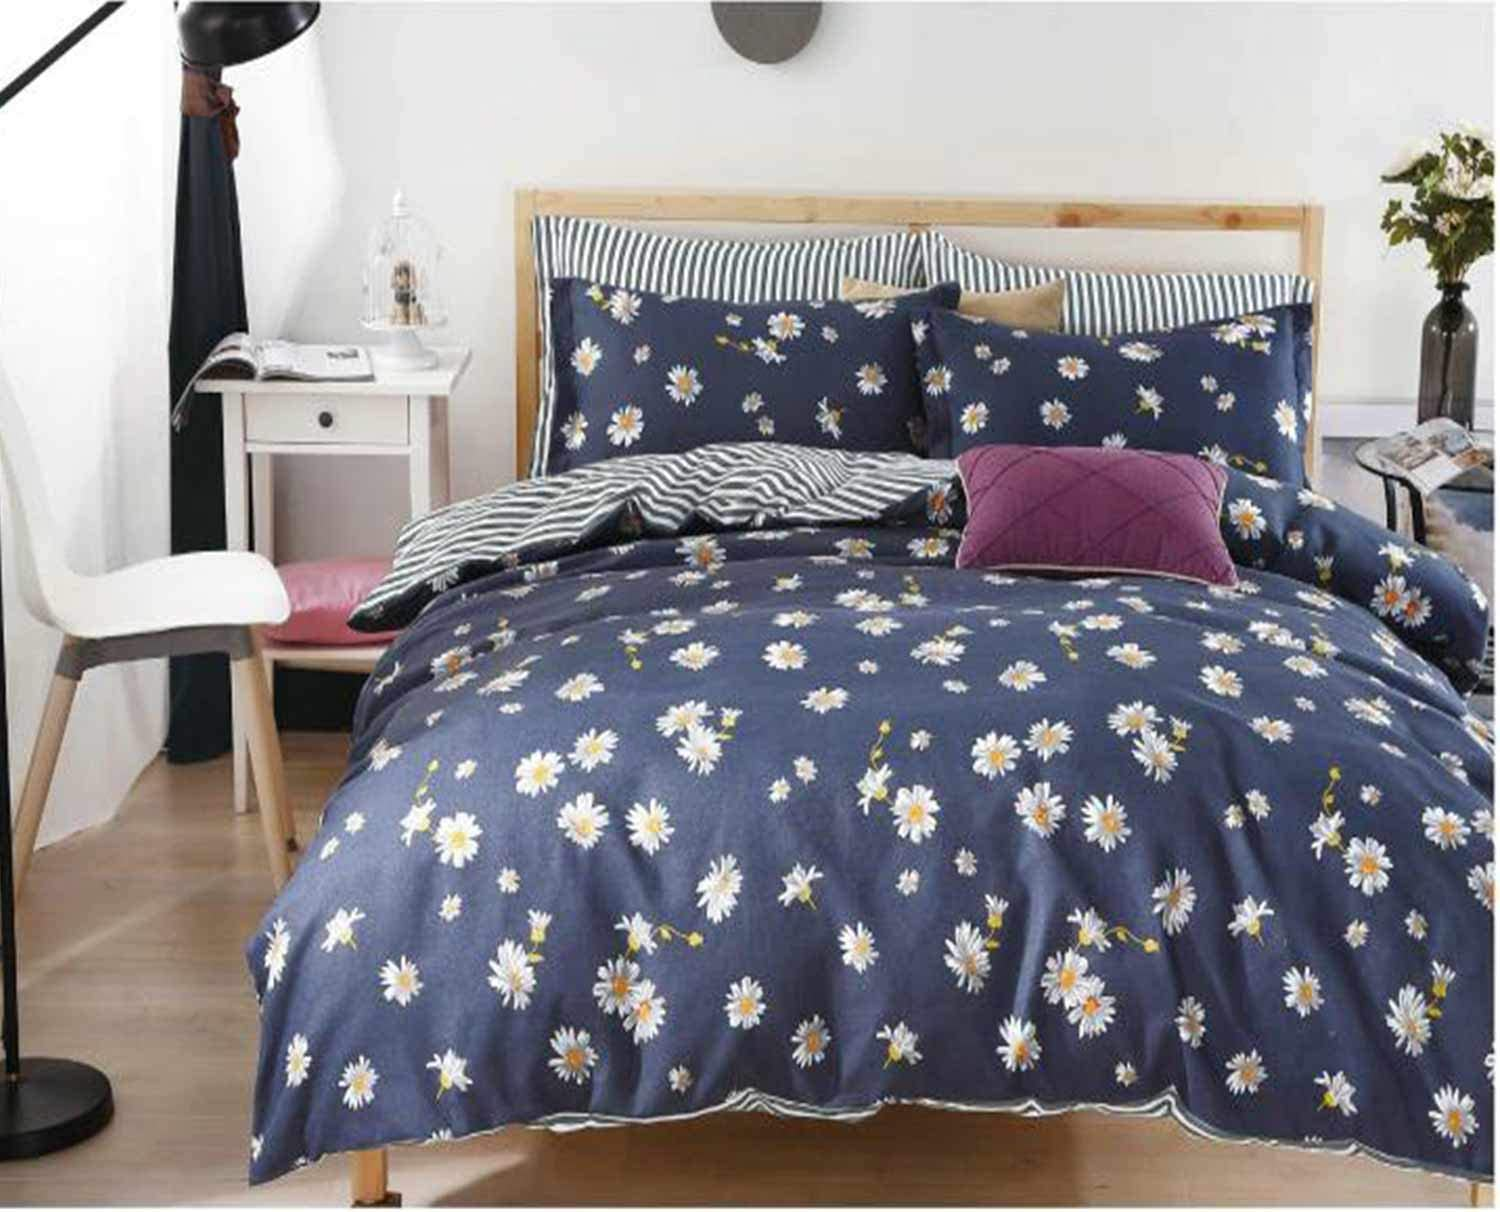 NANKO Daisy Duvet Cover Queen Size 3Pc 90x90 inch Floral/Flower Lightweight Microfiber Down Comforter Quilt Bedding Cover with Zipper Ties for Women,Navy Blue Striped Farmhouse Style